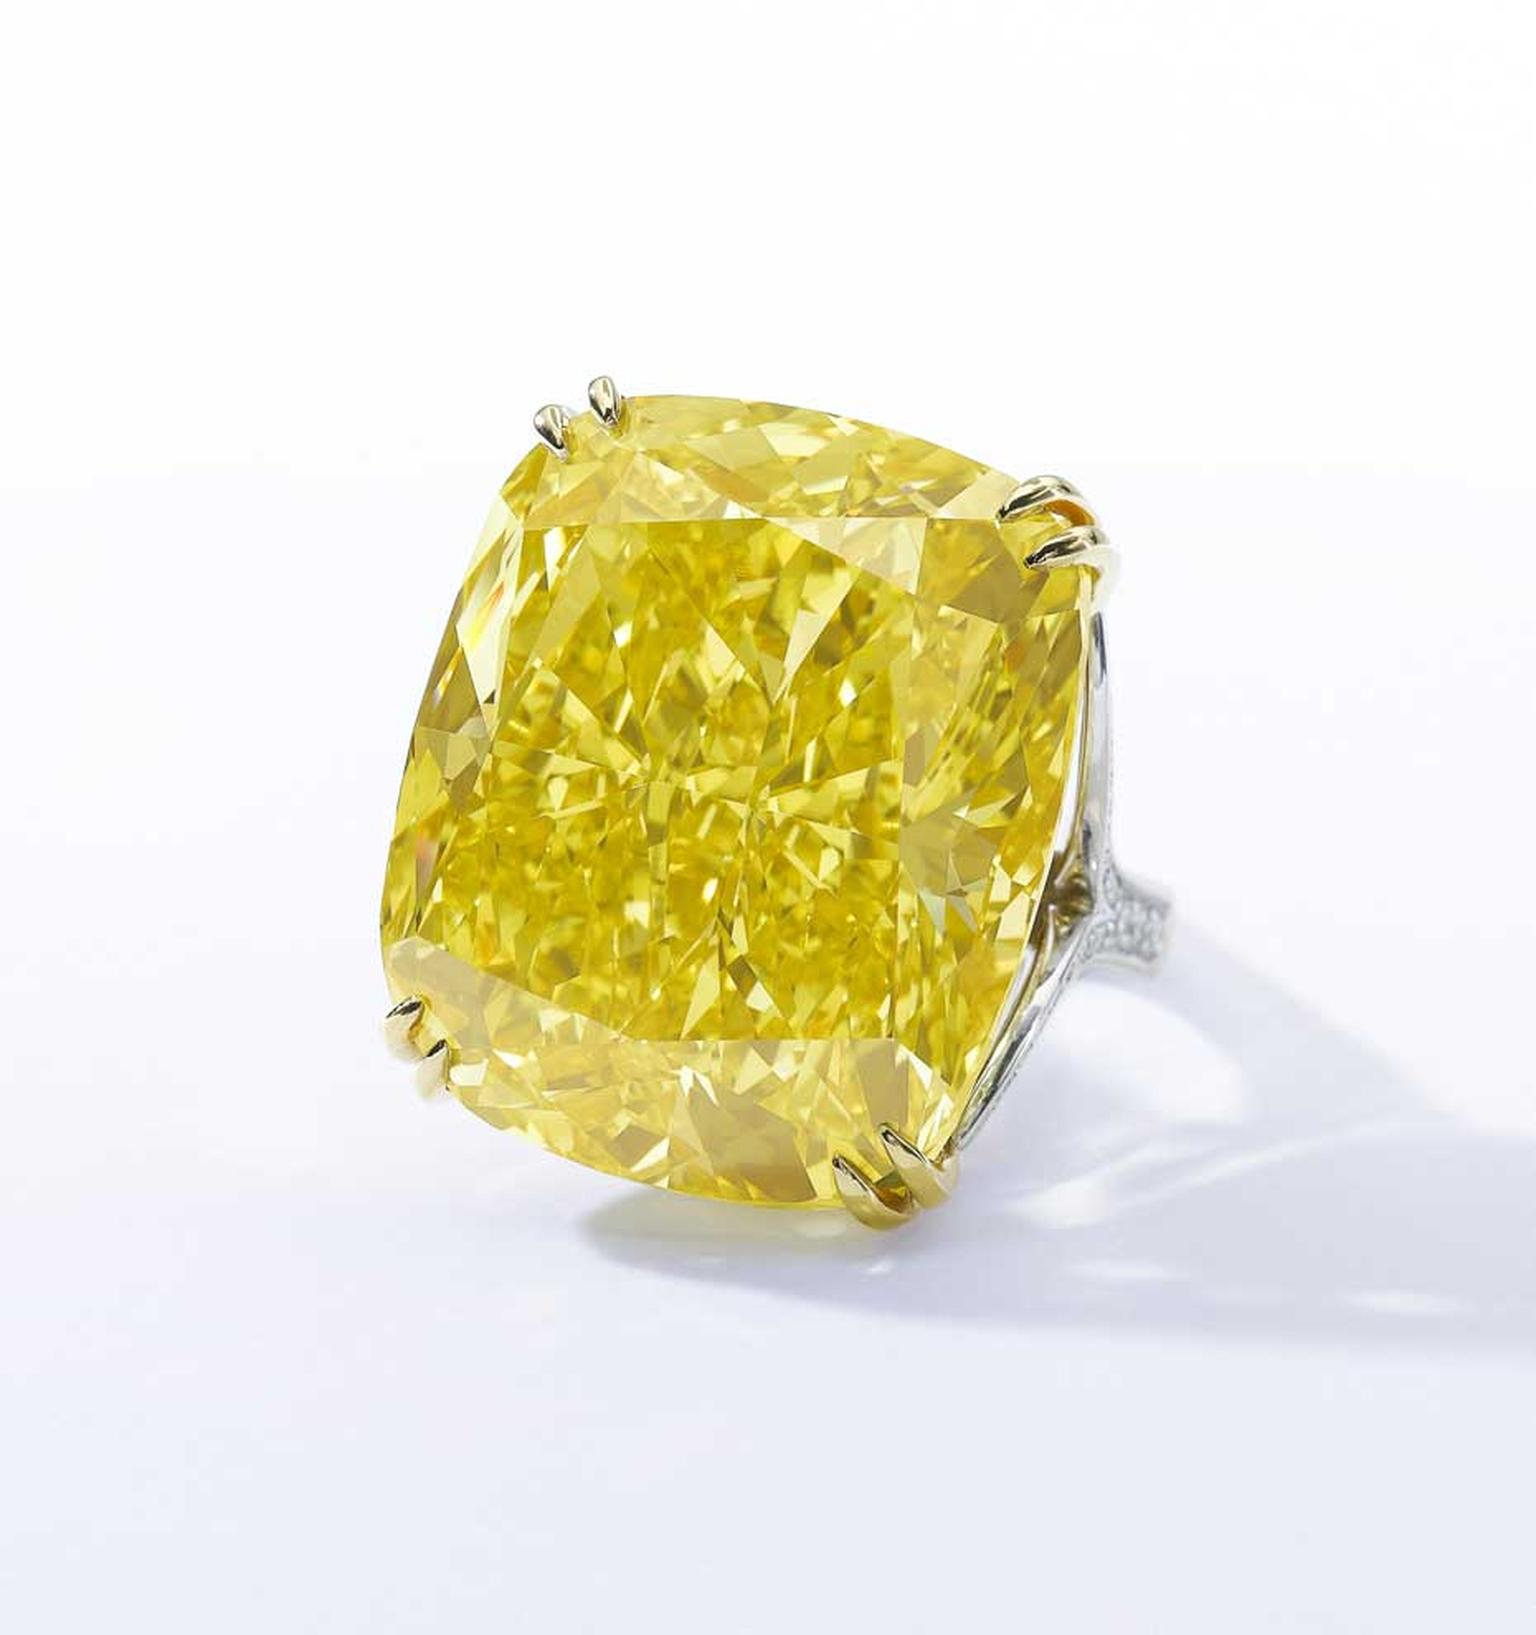 The 100.09 carat Graff Vivid Yellow diamond is one of the largest Fancy Vivid yellow diamonds ever seen. It set a new world auction record for the highest price ever paid for a yellow diamond when it sold for $16.3 million at Sotheby's Geneva on 13 May 20